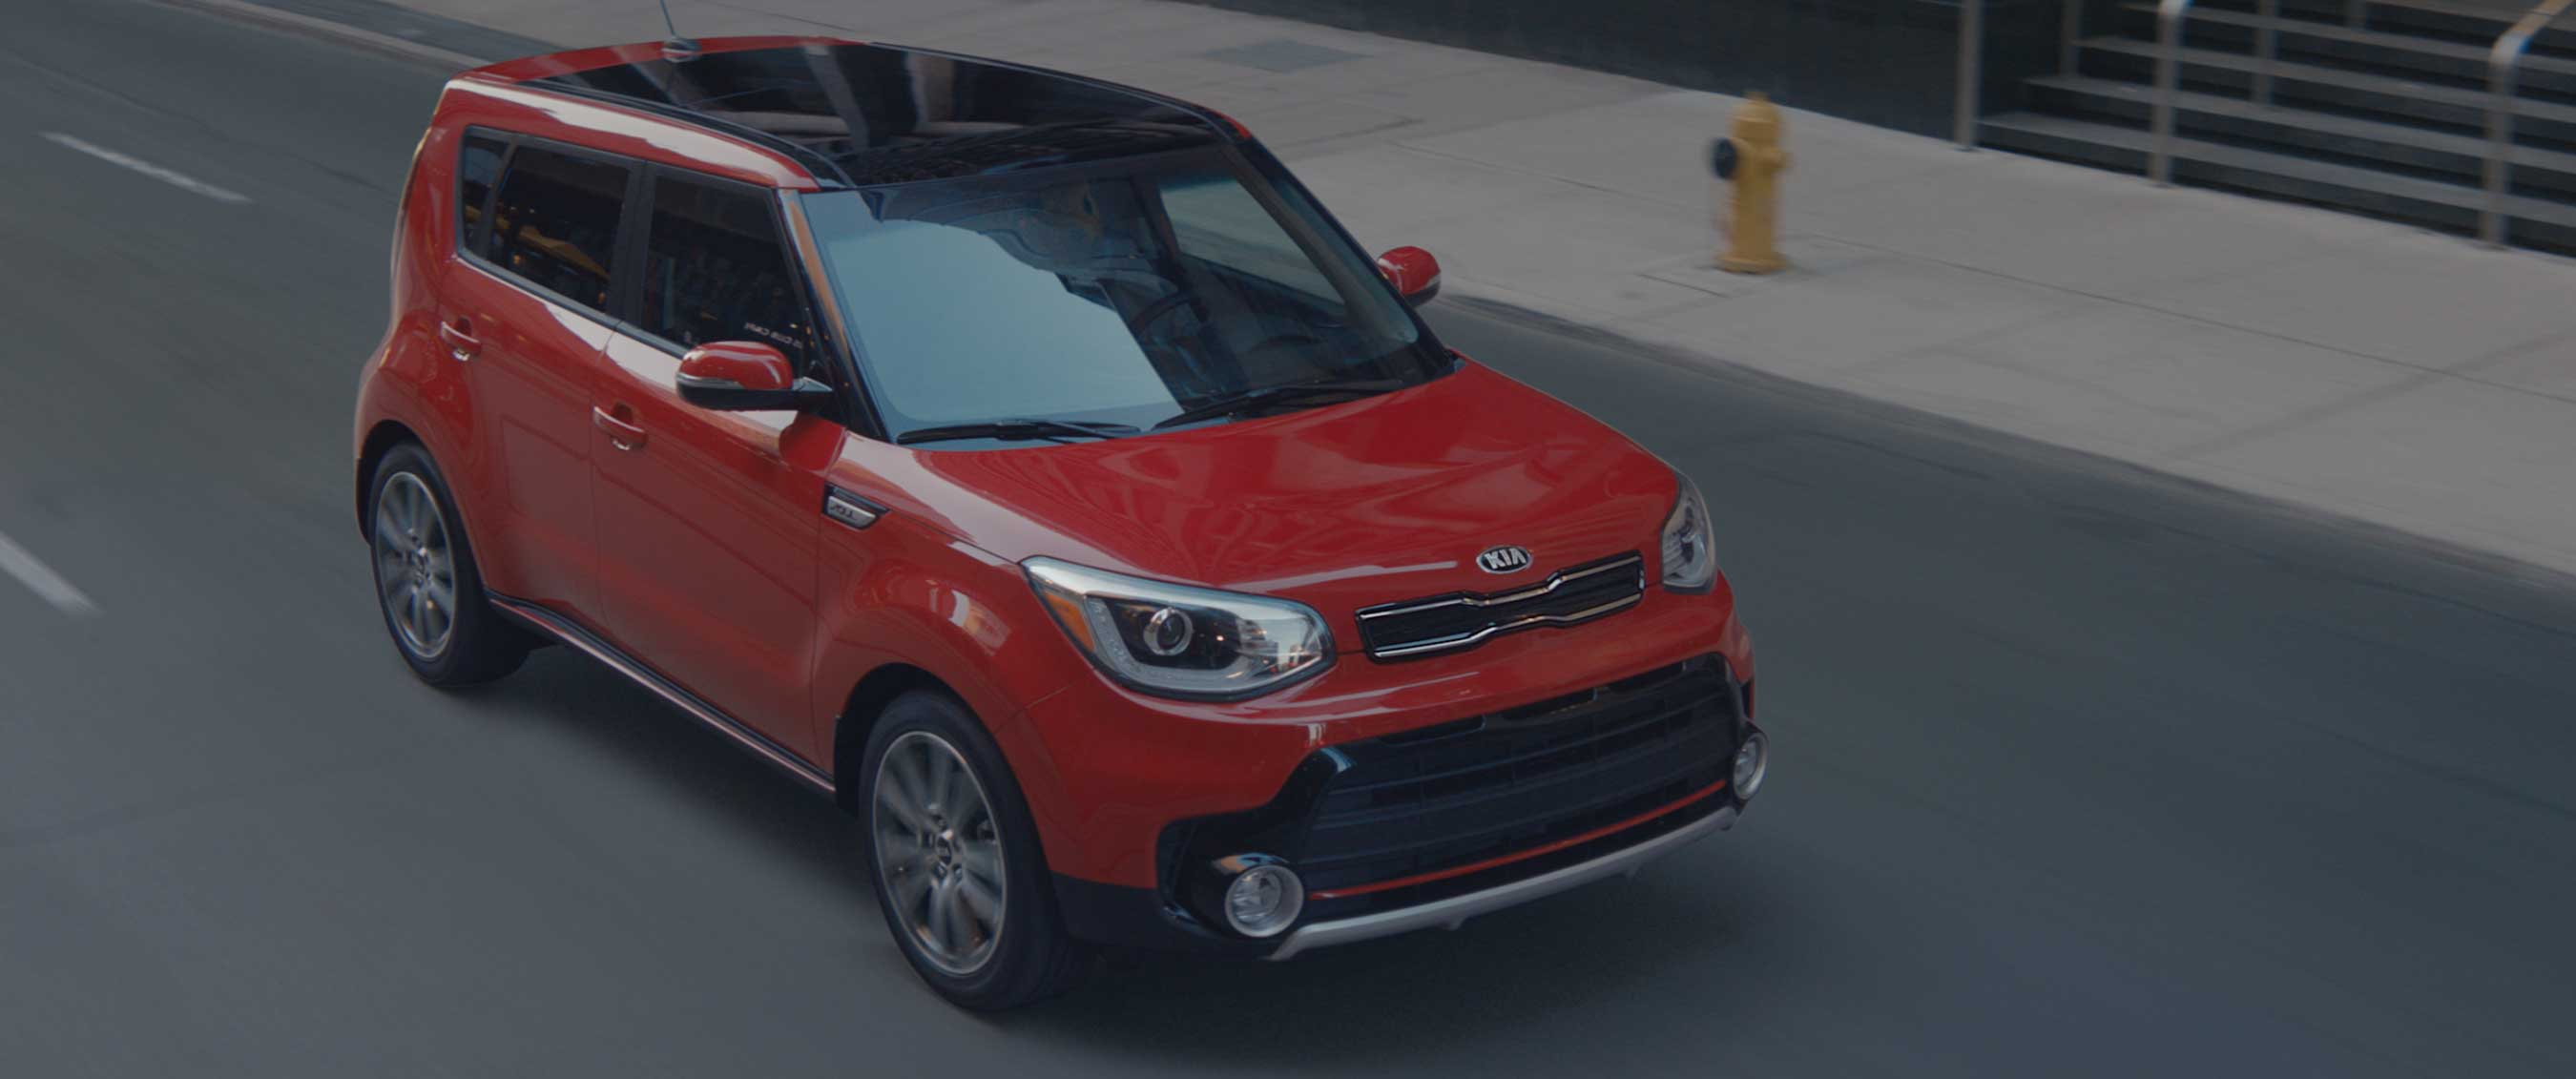 2017 Kia Soul Turbo | The Turbo Hamster Has Arrived